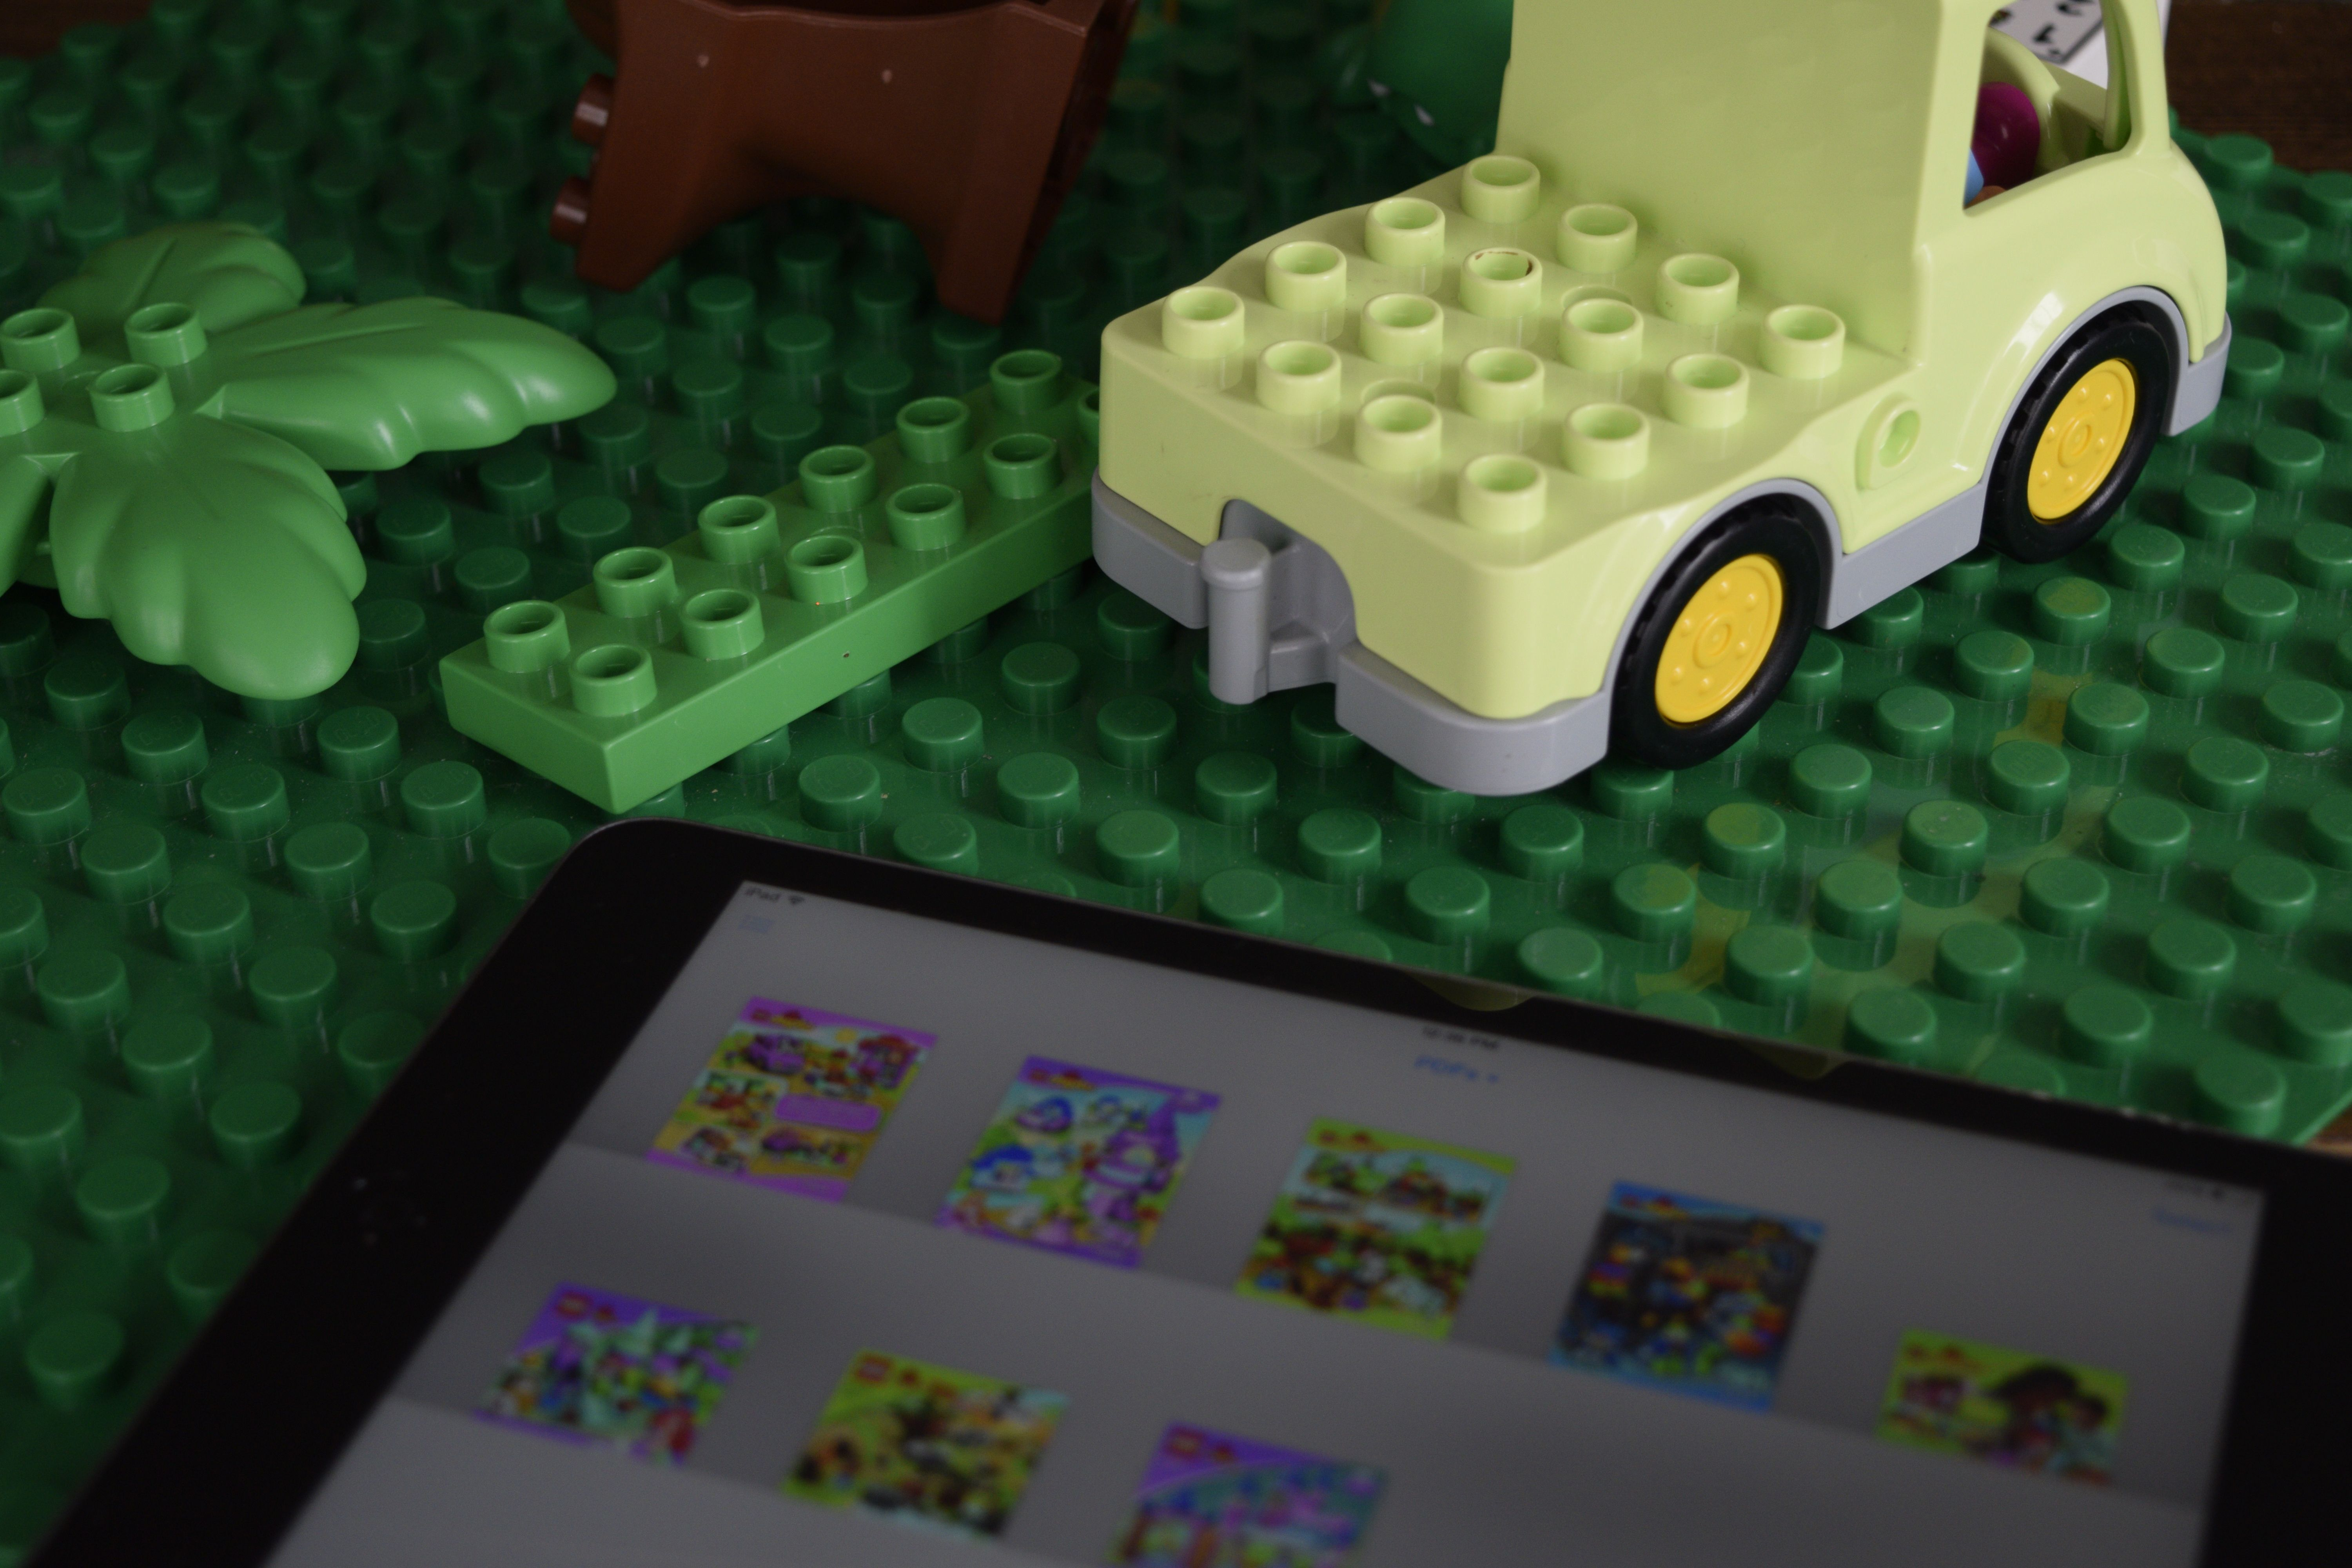 How To Download Lego Build Instructions For Ipad Kids Art Games